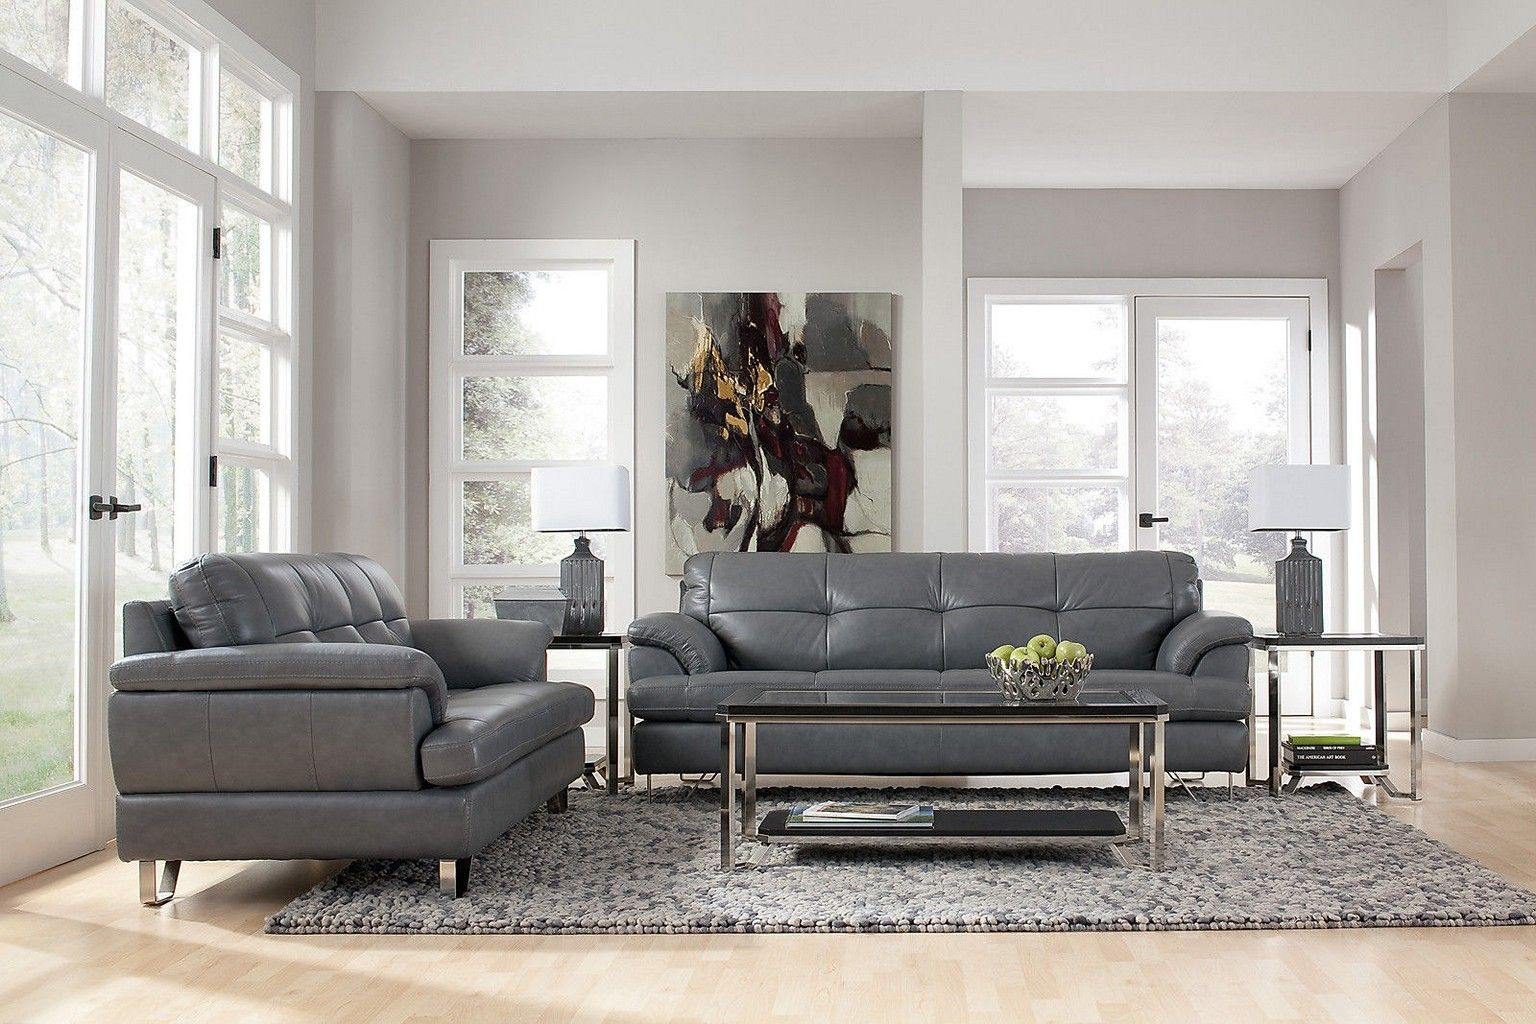 Living Room Design With Black Leather Sofa Magnificent Beautiful Grey Sofa Living Room Image Grey Sofa Living Room Inspiration Design